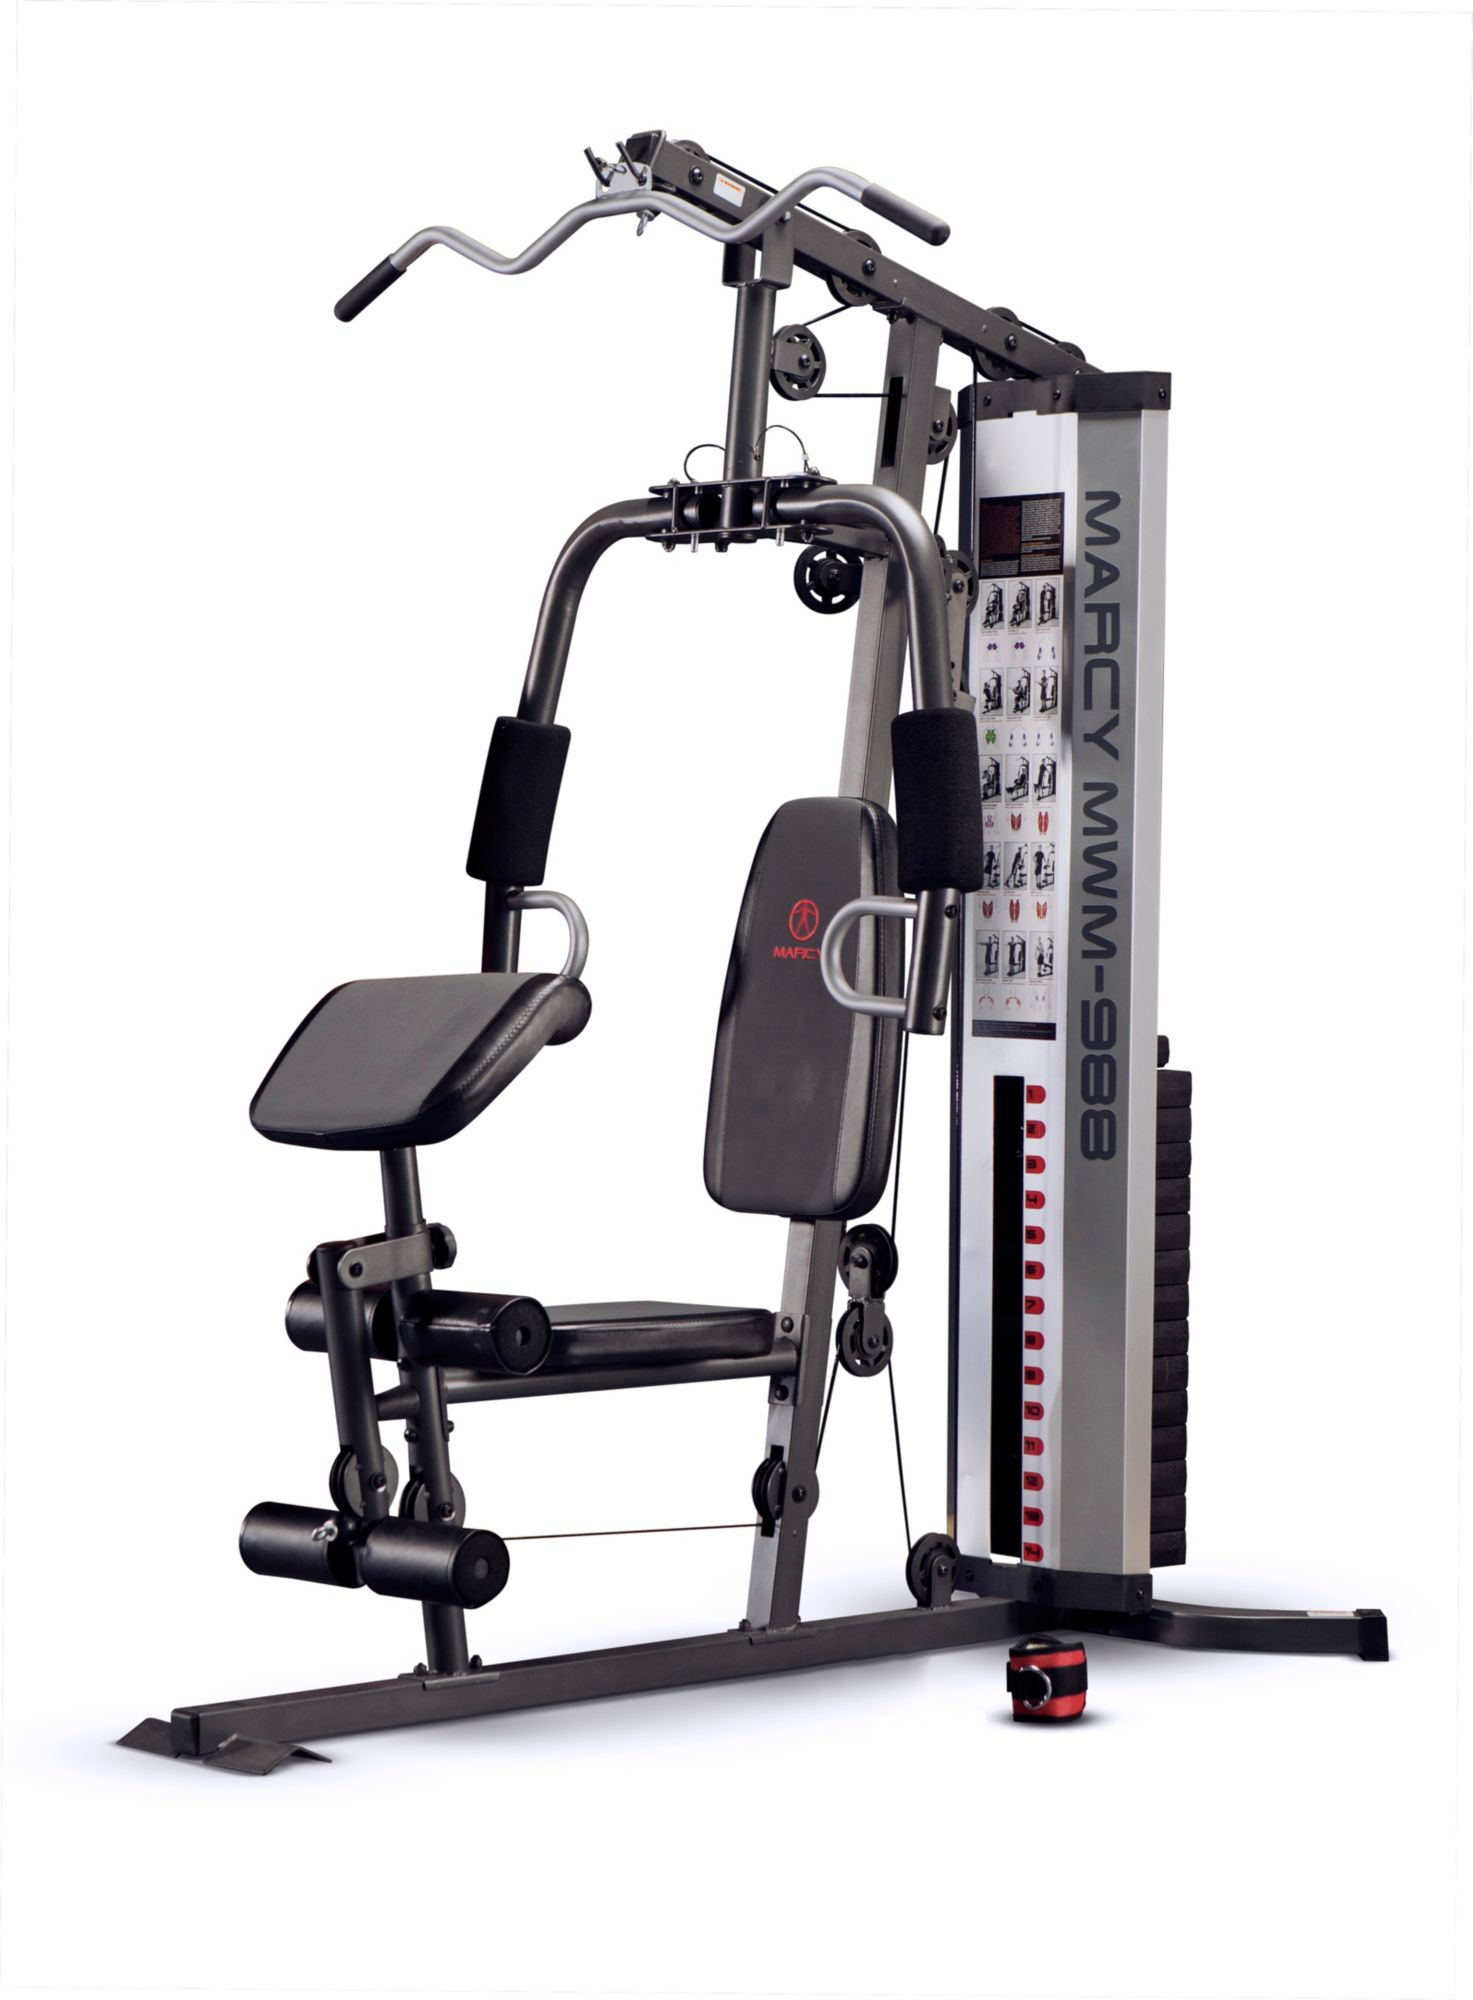 Marcy Gym Equipment Dick S Sporting Goods